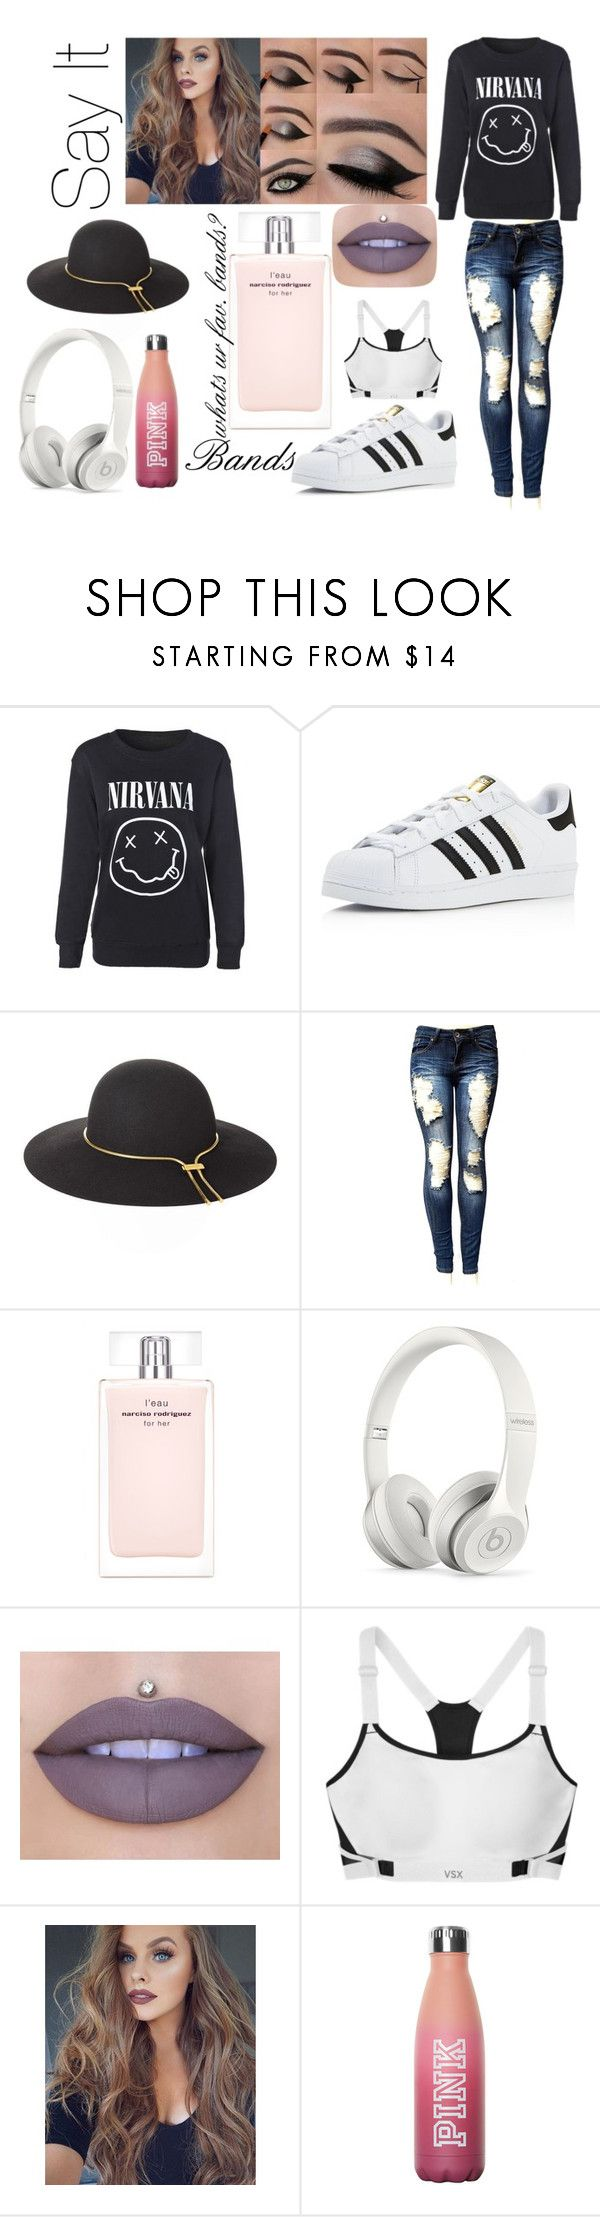 """Say It - Tory Lanez - What ur fav. artists/bands?"" by haileywilkins1 ❤ liked on Polyvore featuring adidas, Lanvin, Narciso Rodriguez, Beats by Dr. Dre, Jeffree Star and Victoria's Secret"